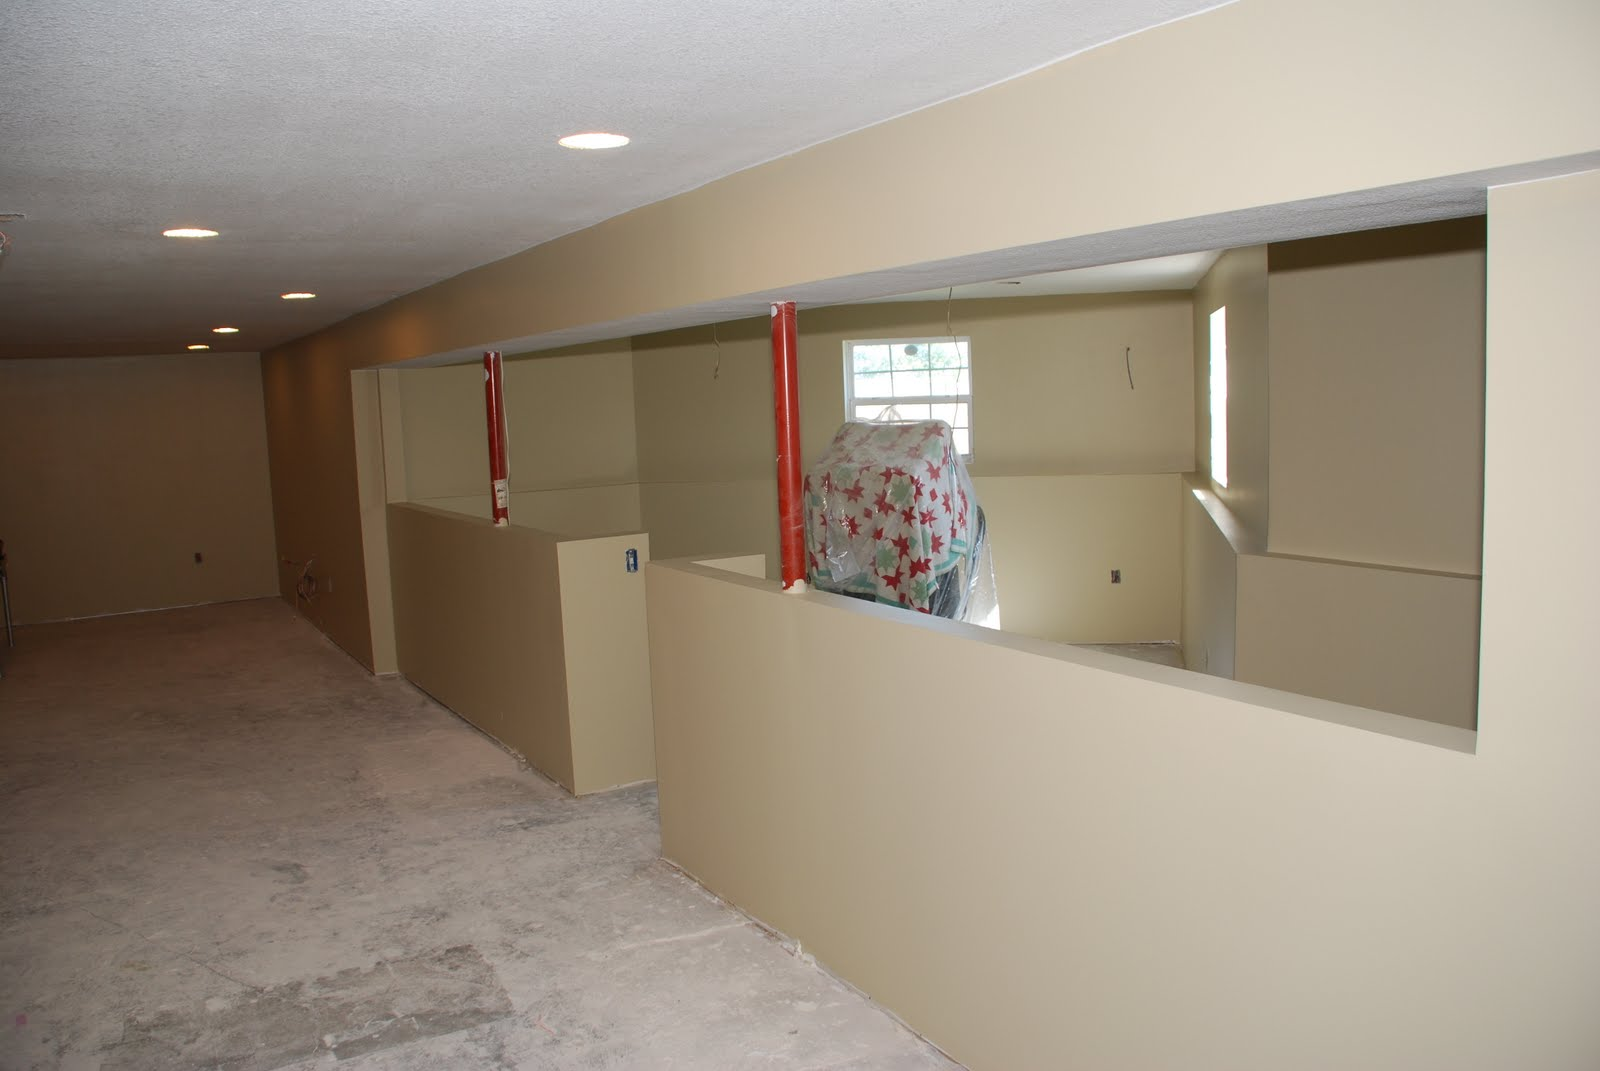 20 Gallons of paint + 2 days = Painted Basement